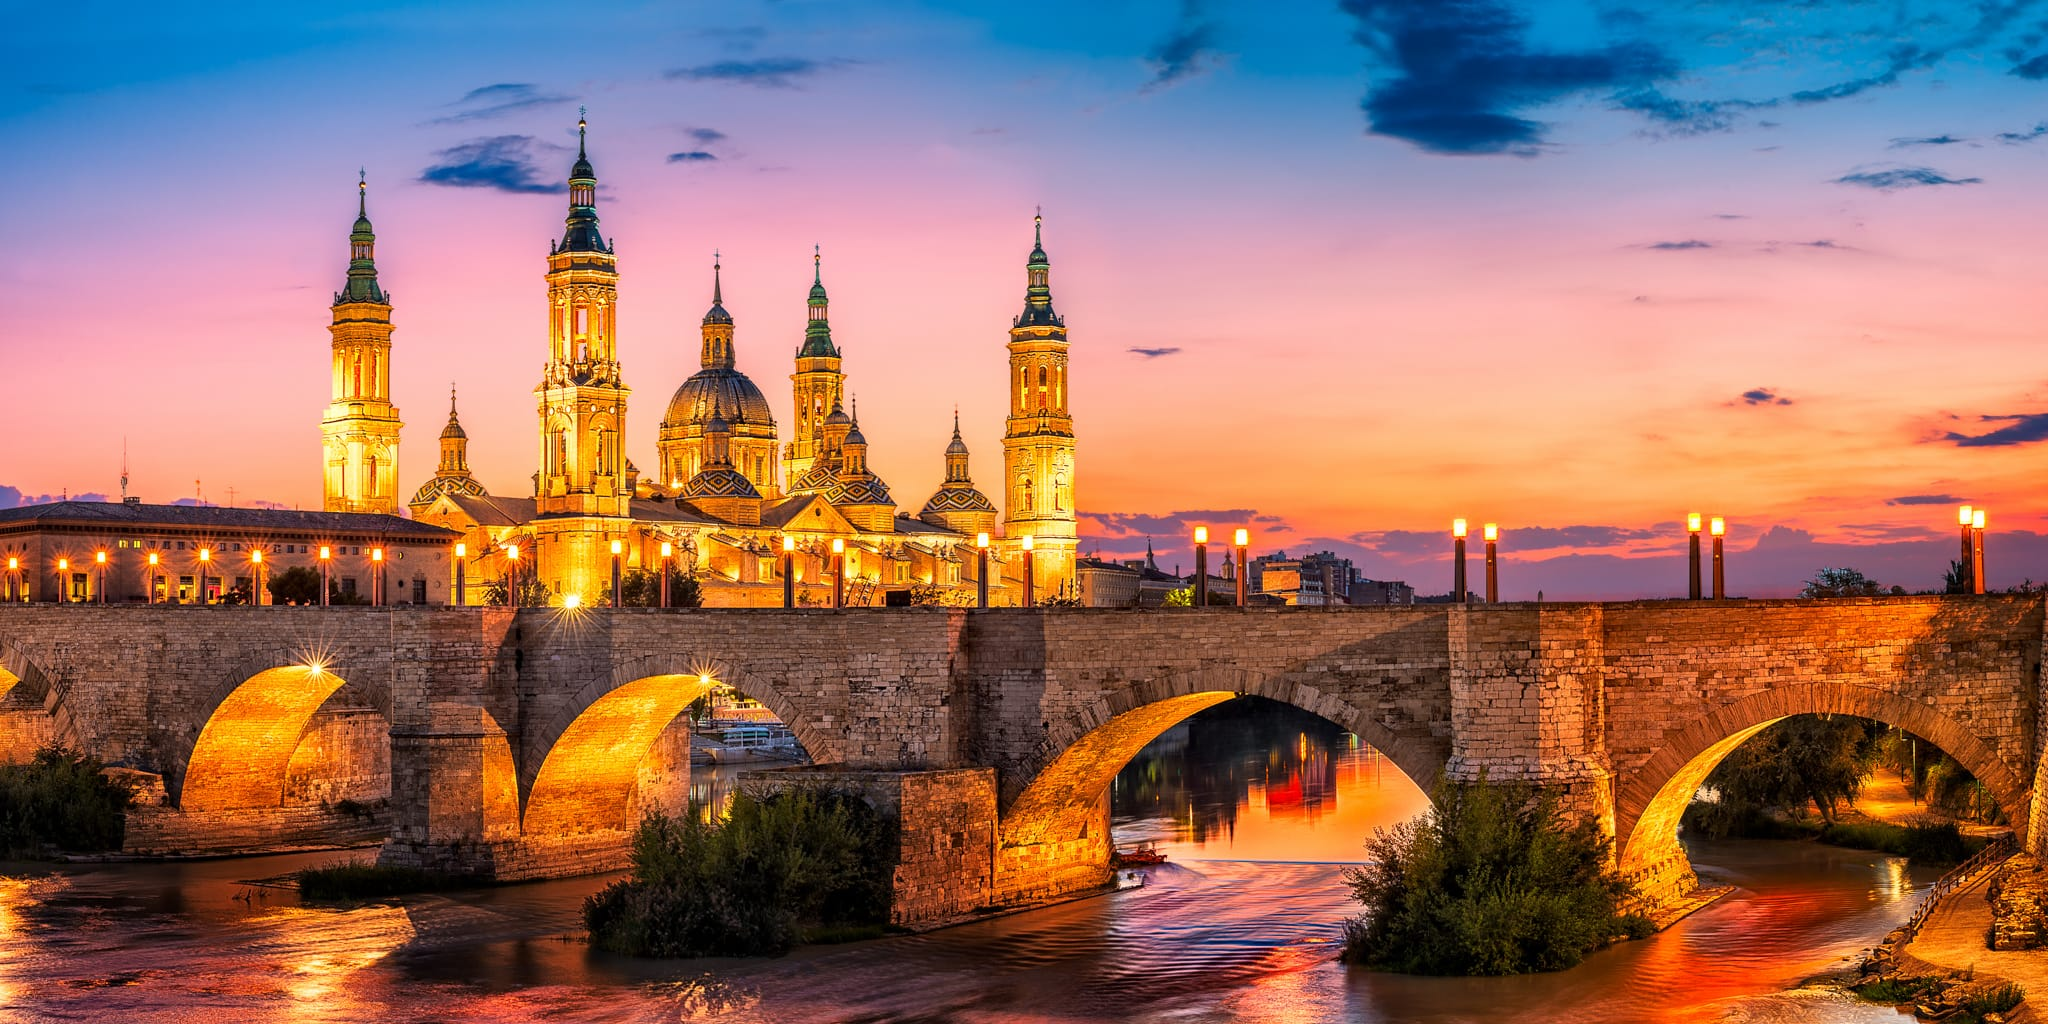 El Pilar Basilica during sunset on one of summer evenings while I was traveling to Spain.